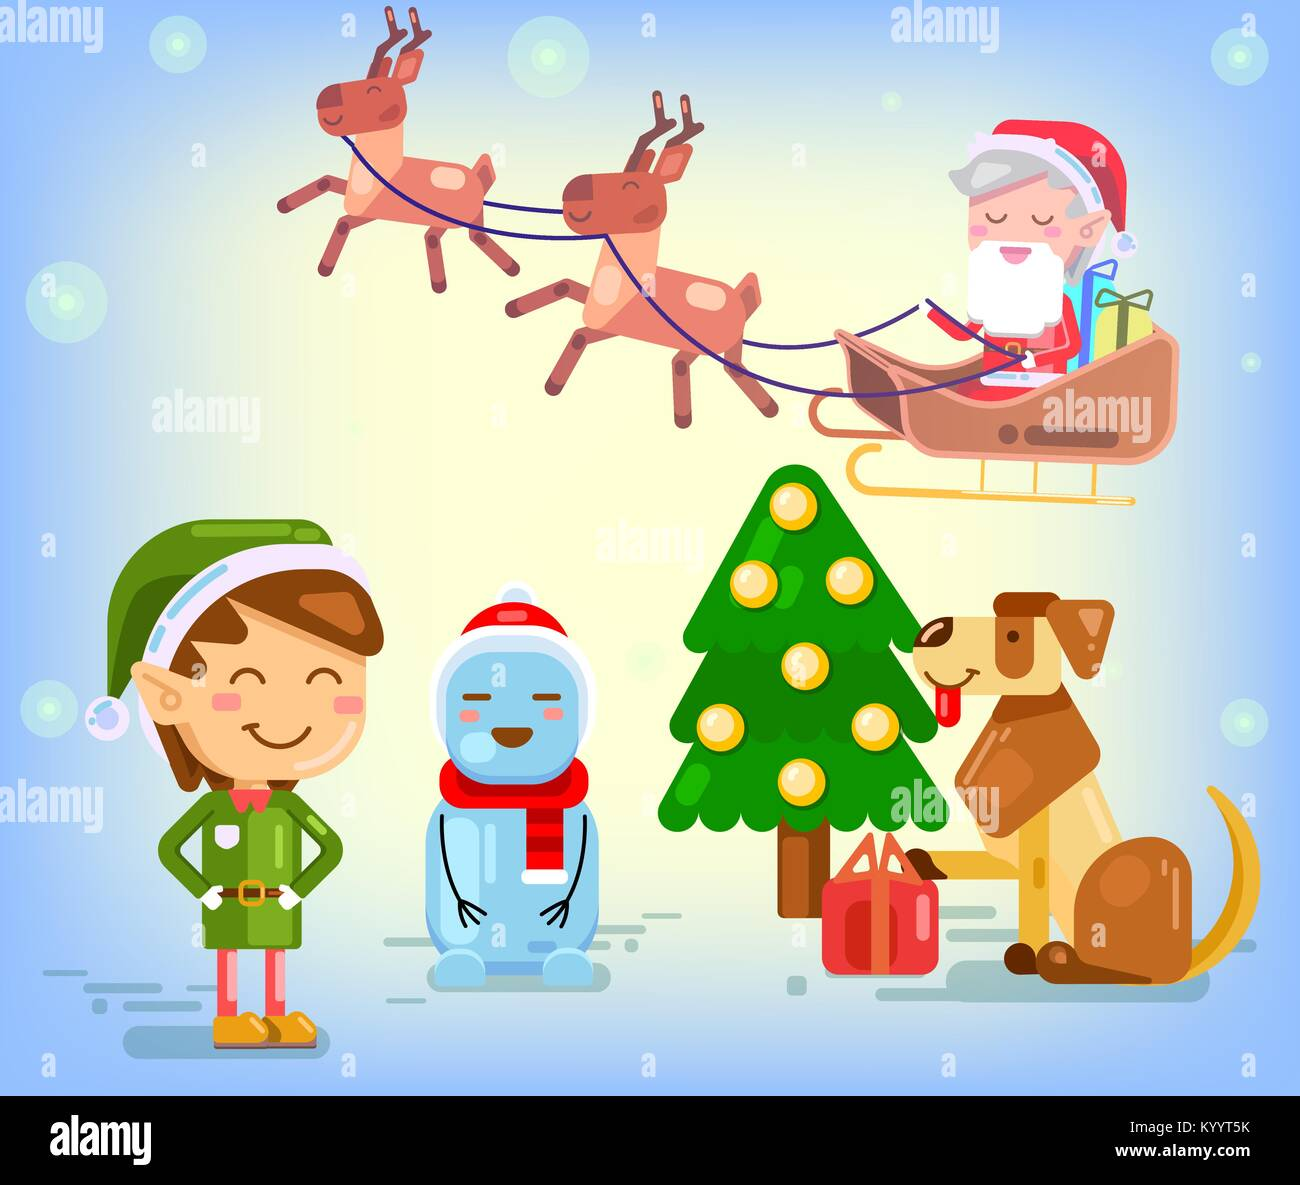 merry christmas and happy new year composition cartoon character flat santa claus and reindeer new year dog snowman and cute elf christmas scene v